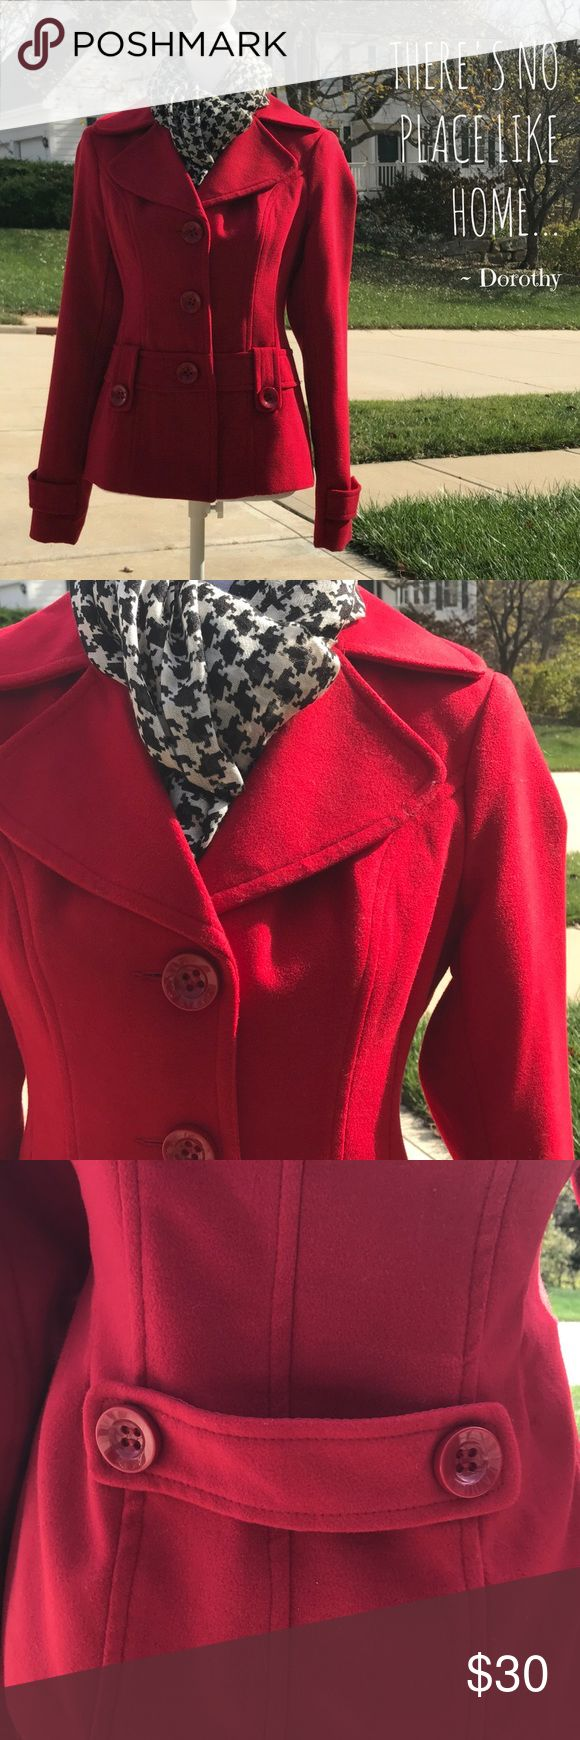 """Red Pea Coat Beautiful Red Peacoat in pristine condition. Size Medium. Measures 18"""" armpit to armpit laying flat. Length from upper shoulder seam to bottom hem is 23"""". 100% Polyester. Dry clean. Jackets & Coats Pea Coats"""